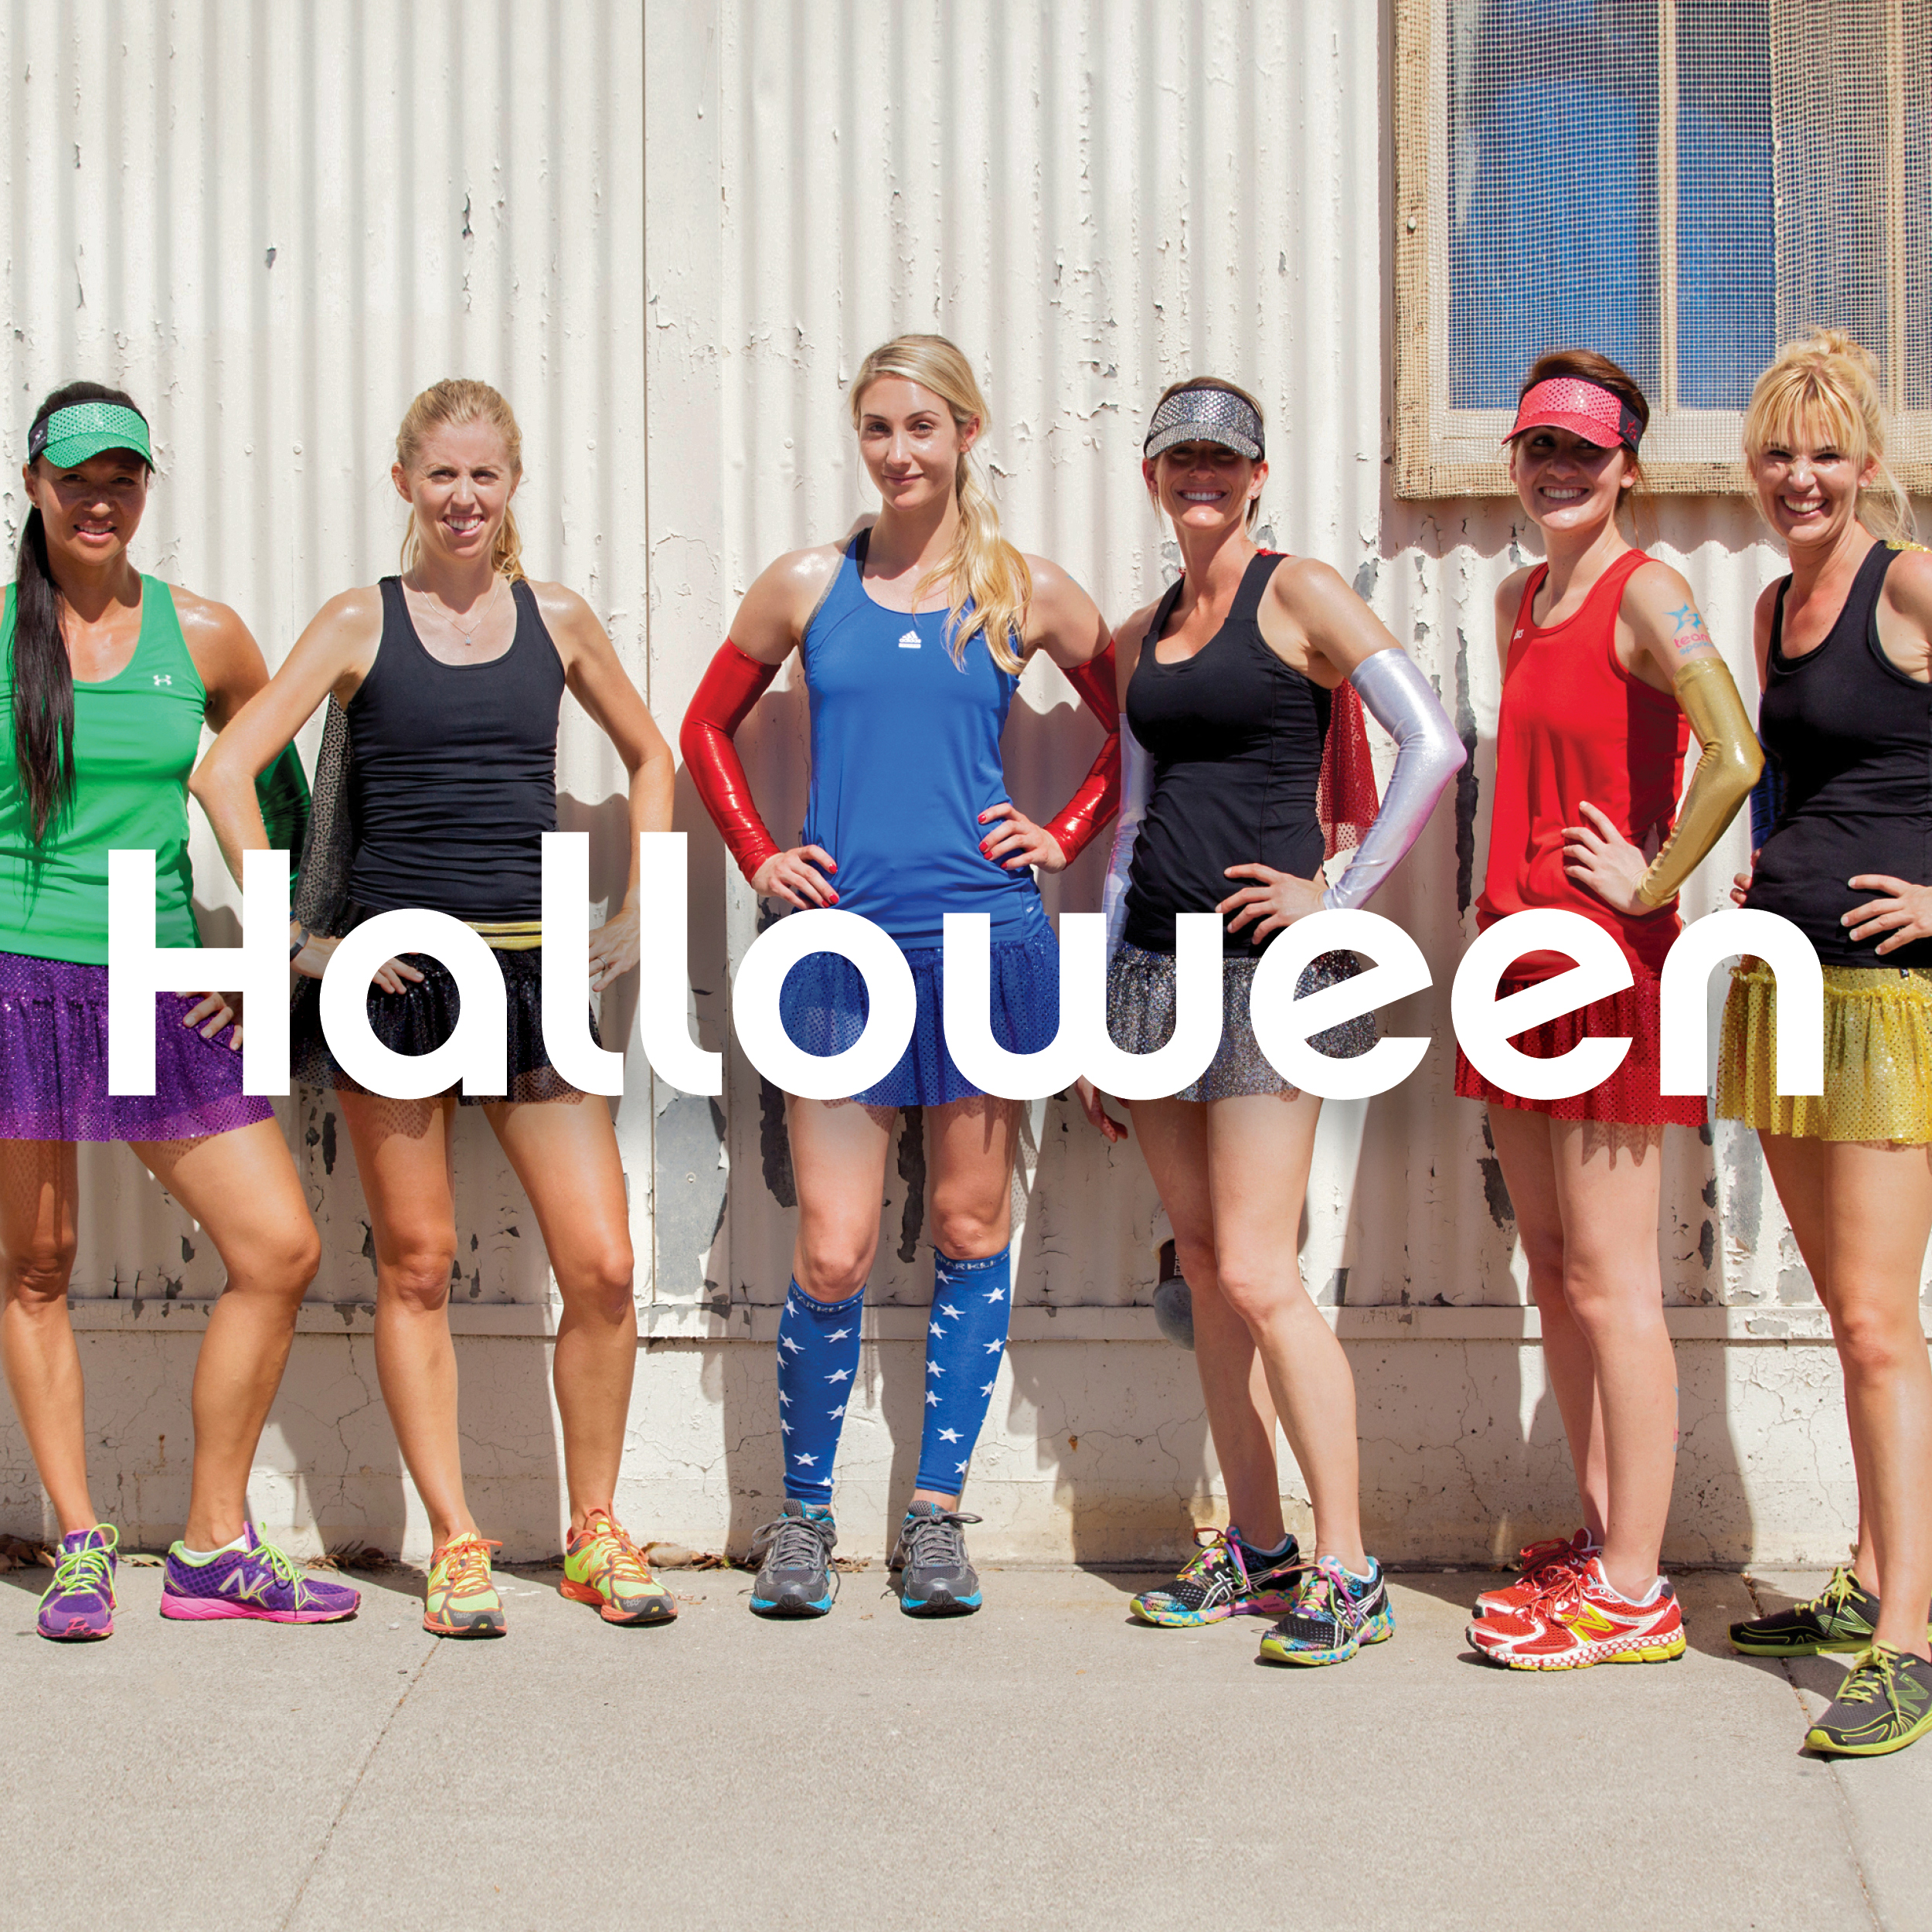 sparkle athletic halloween costume guide | sparkle athletic